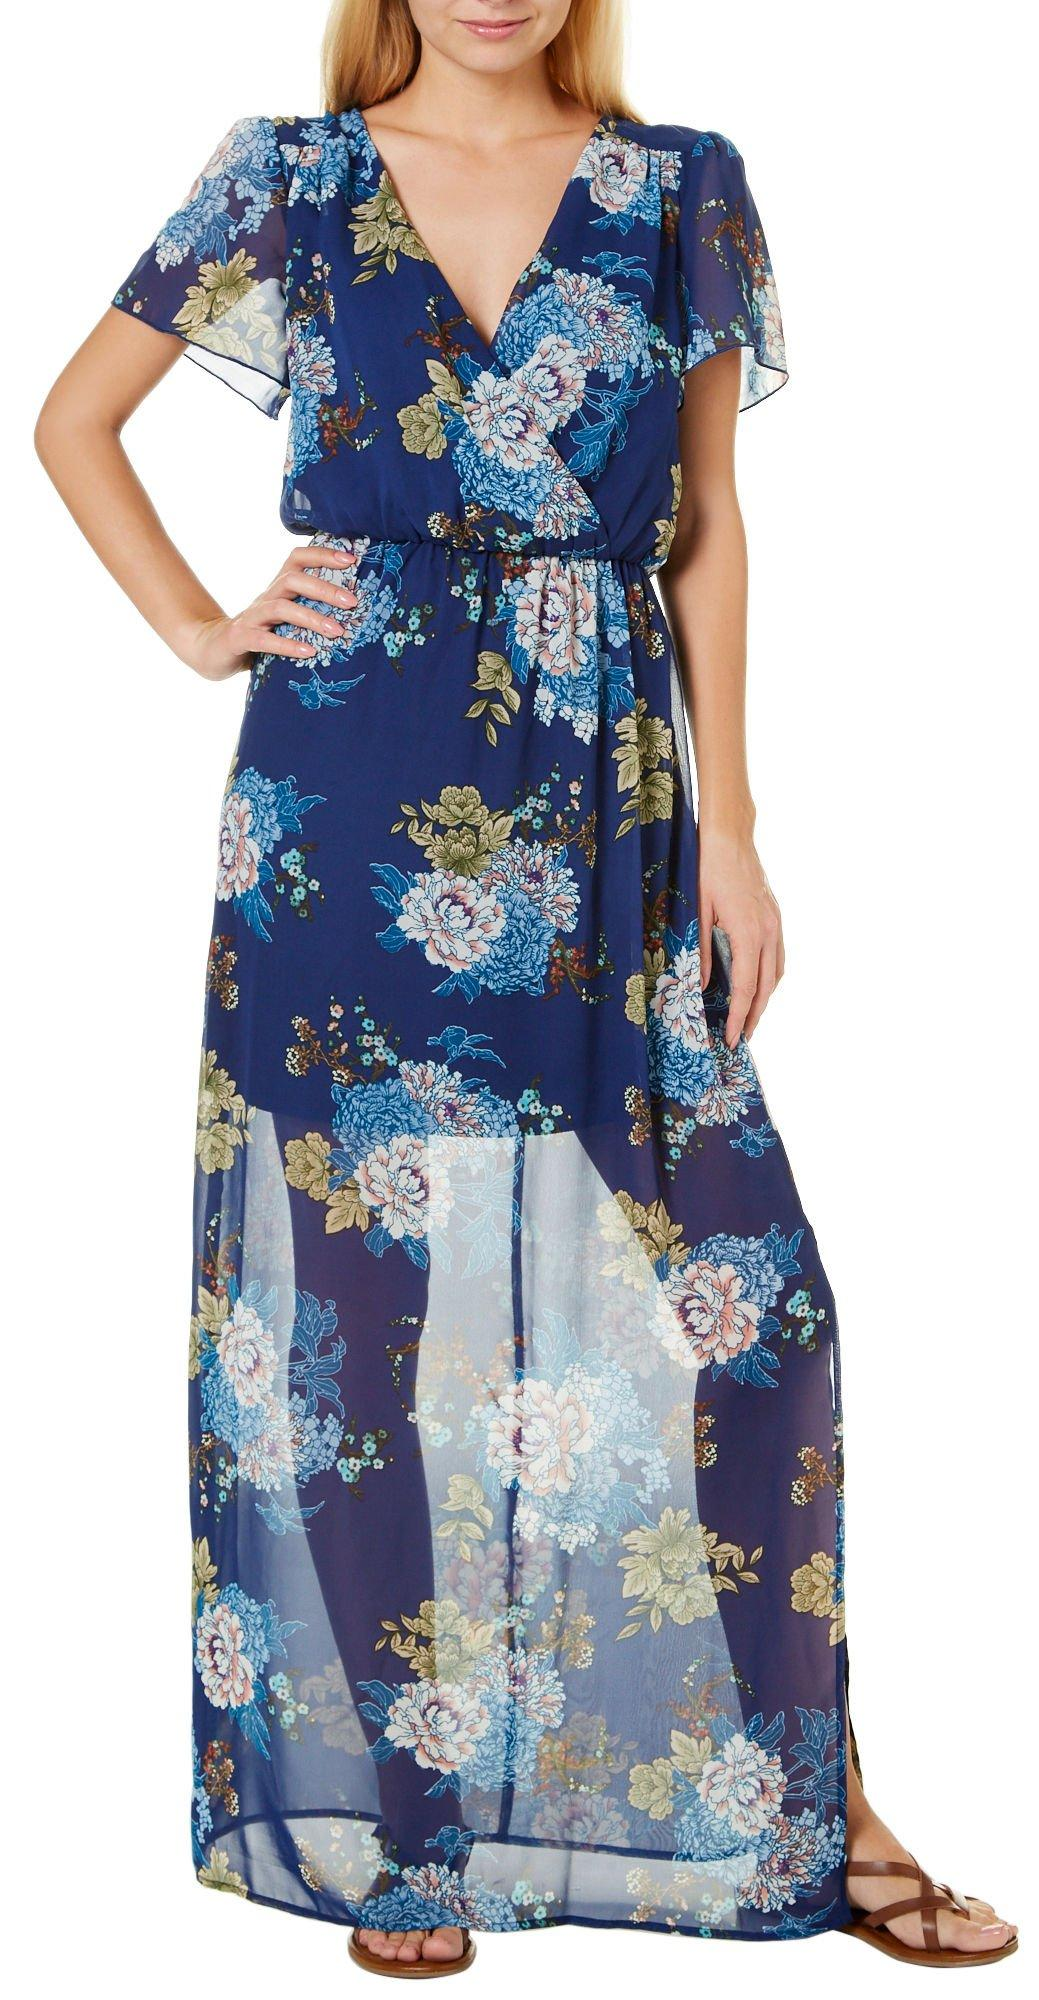 Heart soul navy maxi dress